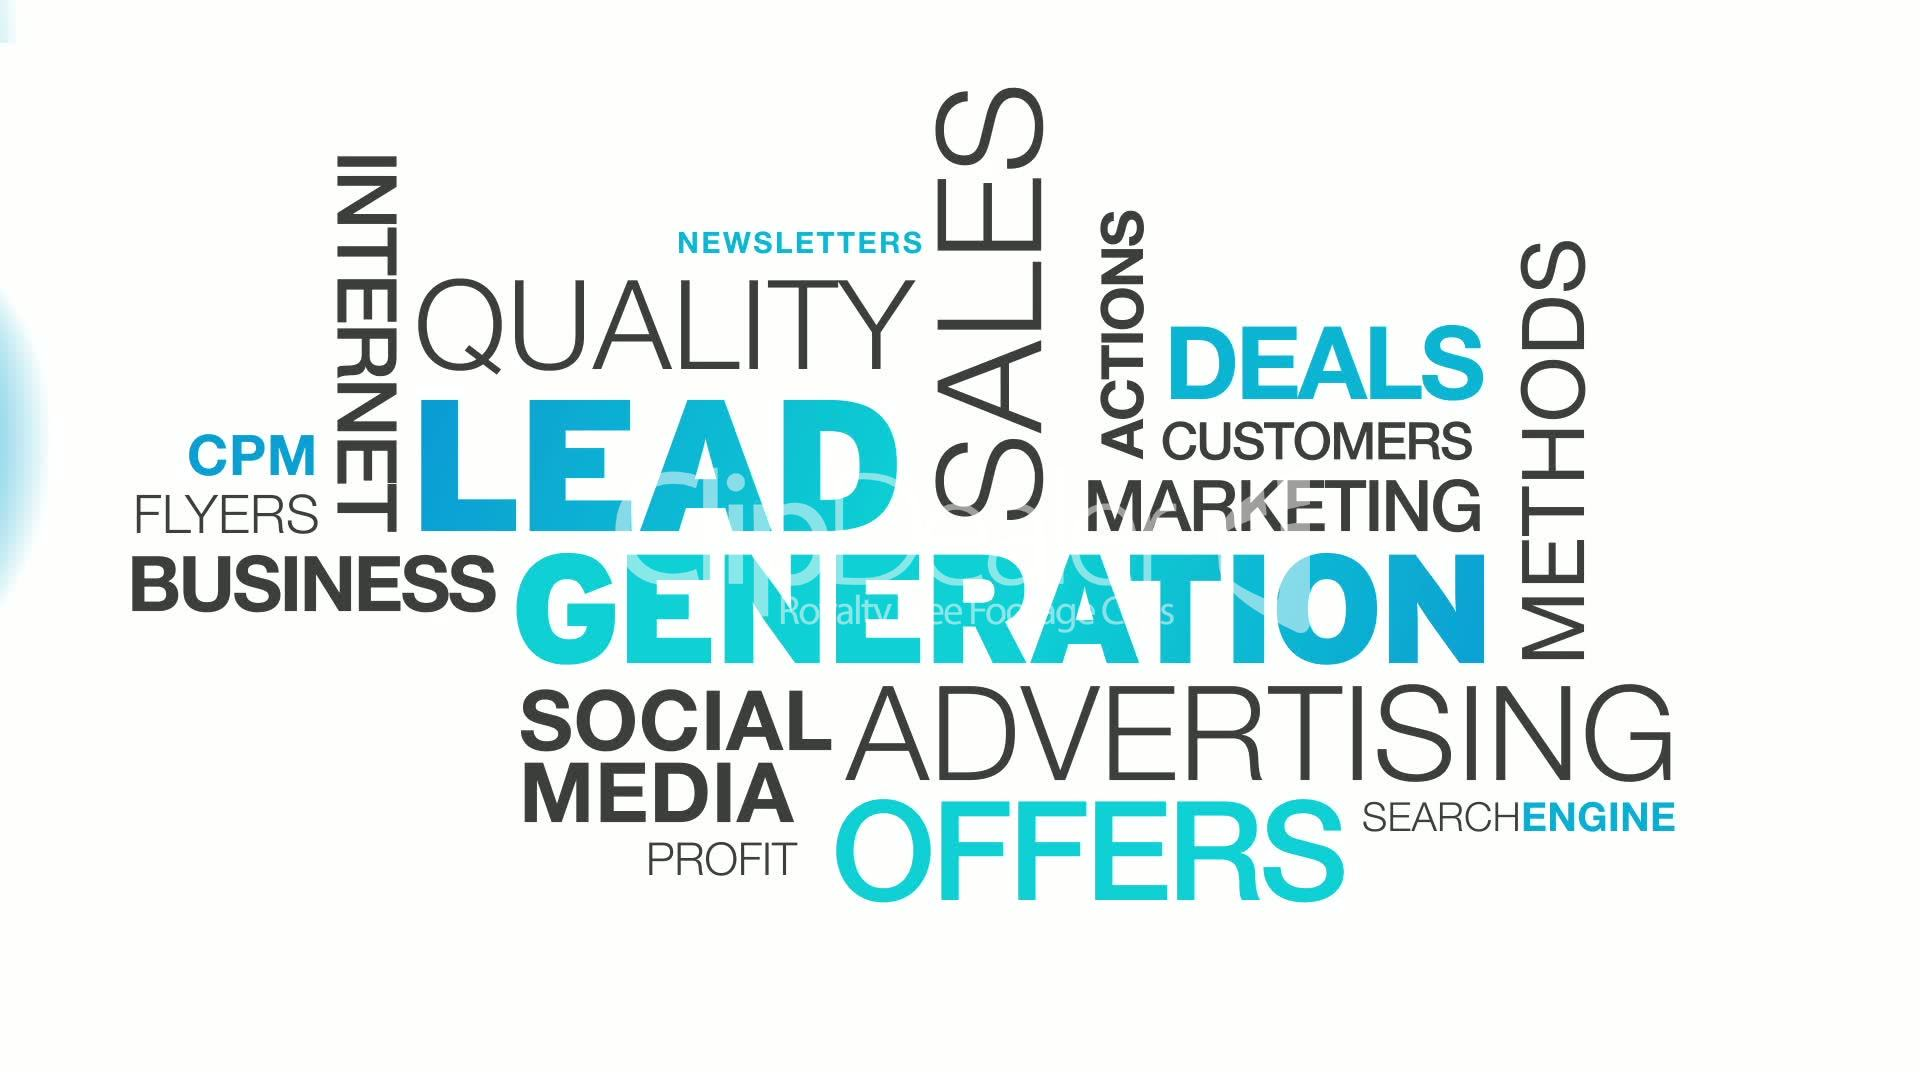 Lead Generation: Nigerian businesses must focus on Lead Generation